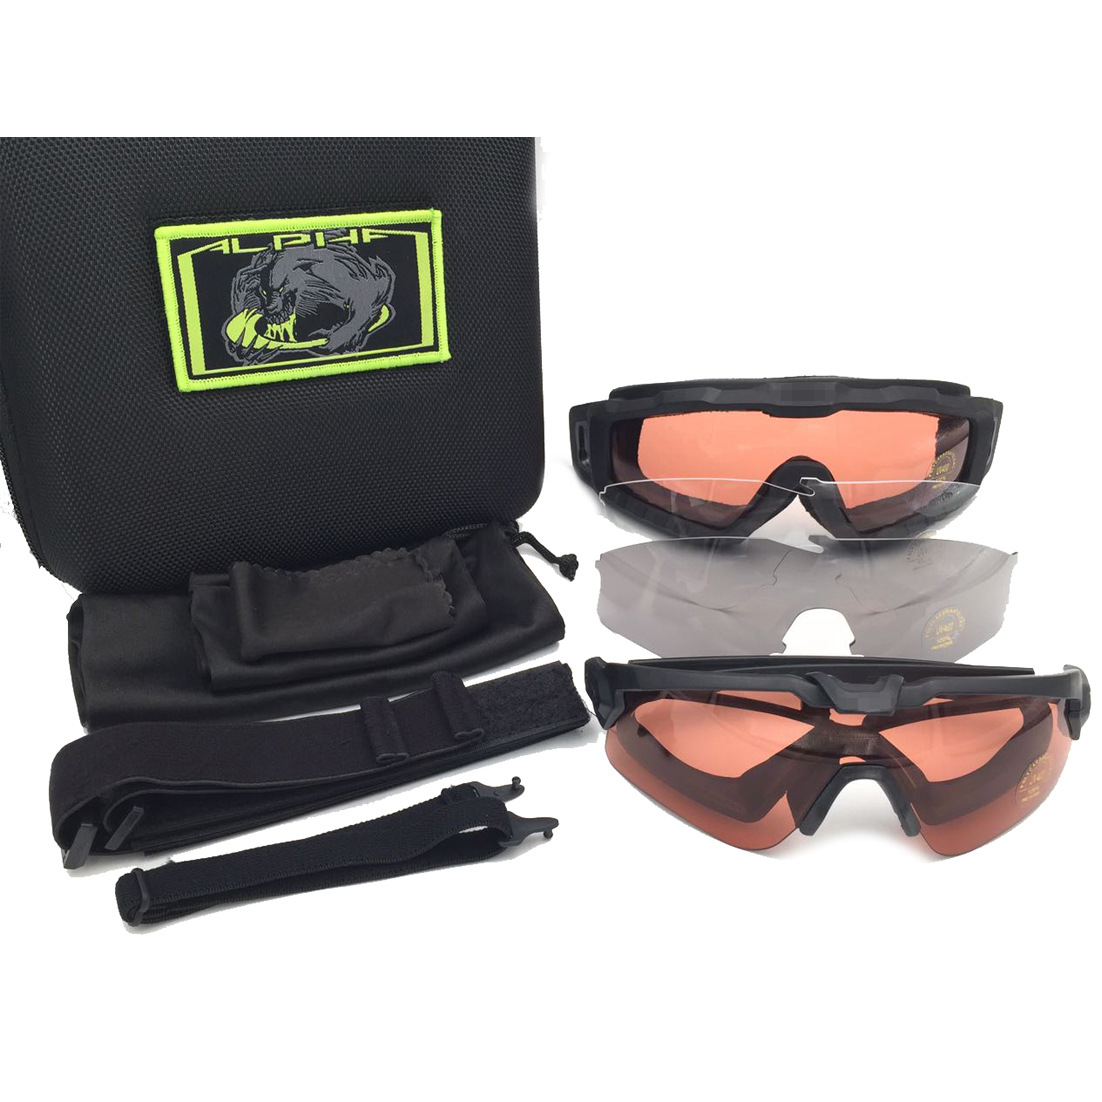 Alpha Army Fans O Standard Explosion-Proof Eye-protection Goggles Tactical Goggles Shooting Glasses Dustproof Wind-Resistant Eye